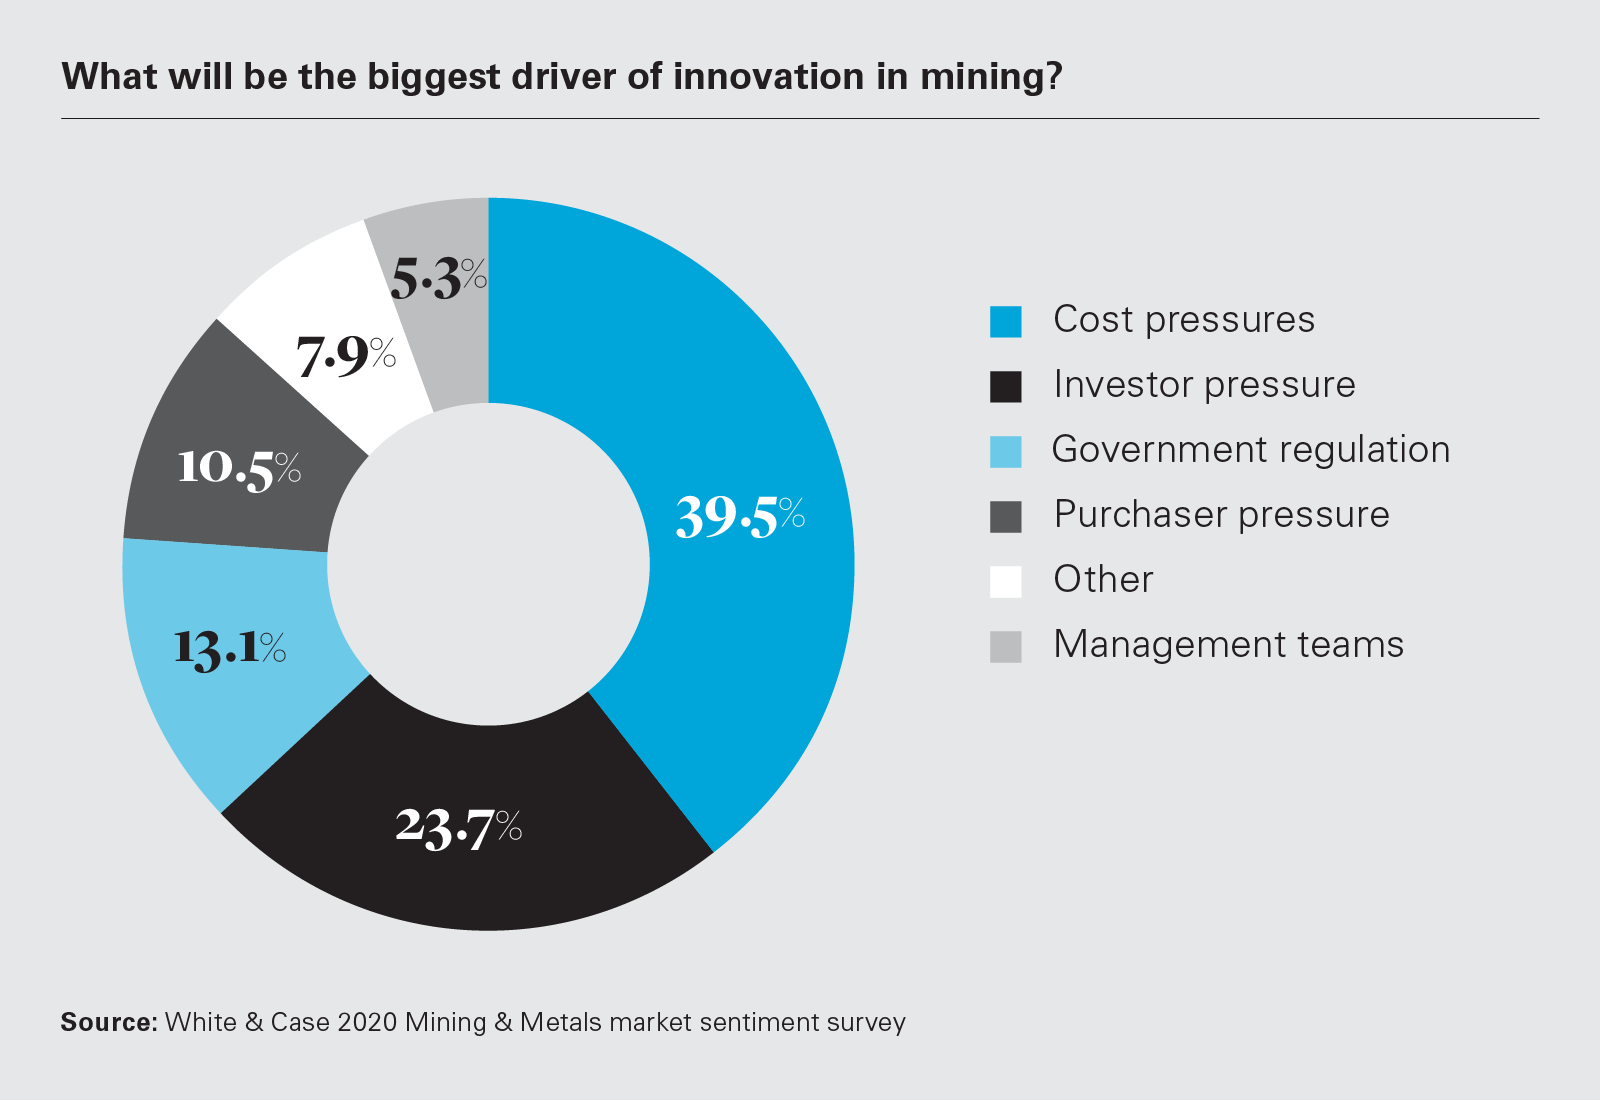 What will be the biggest driver of innovation in mining?